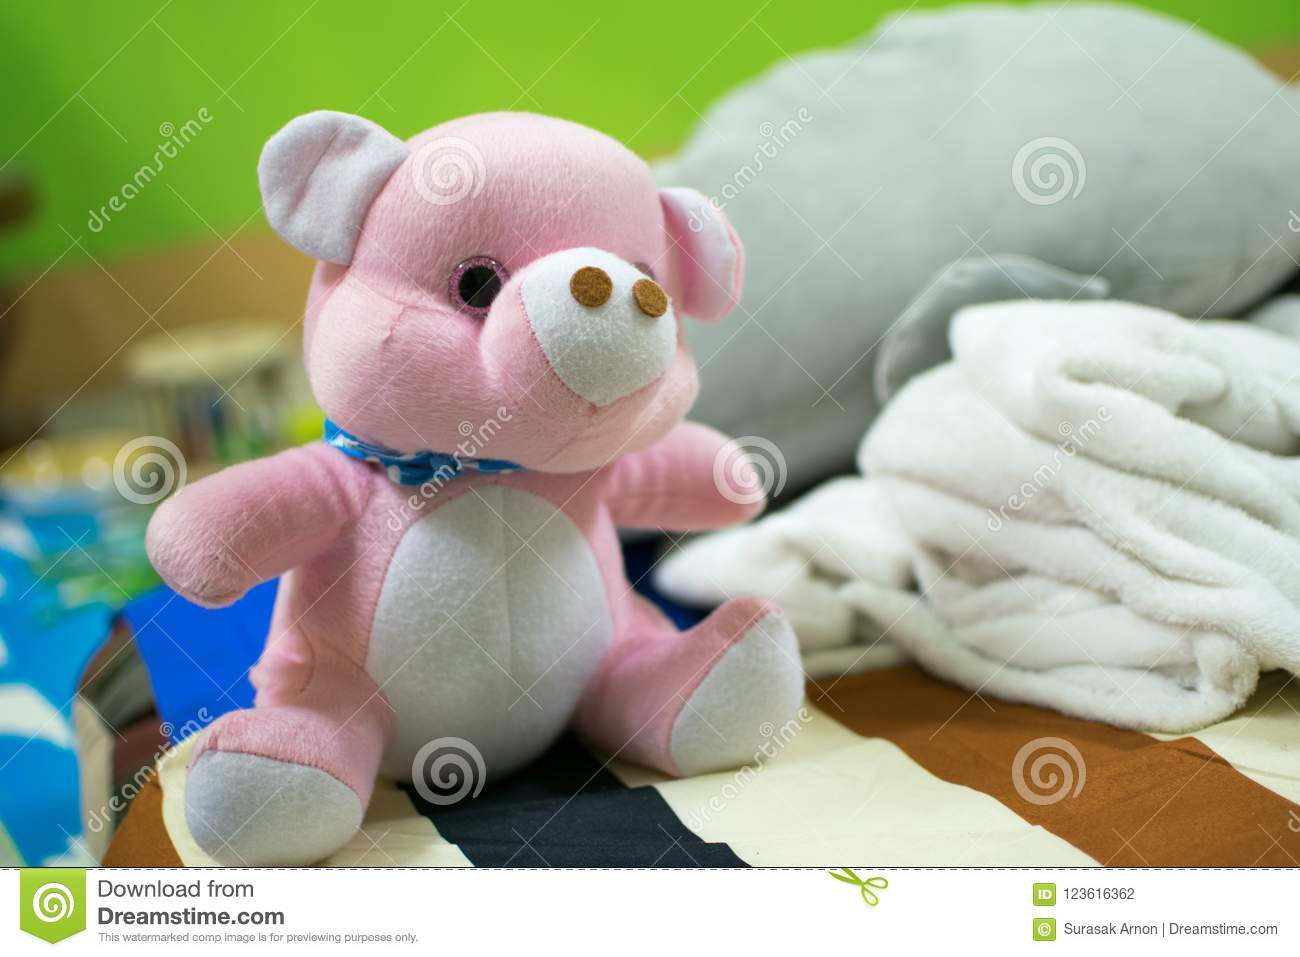 Pink teddy bear placed on the bed.